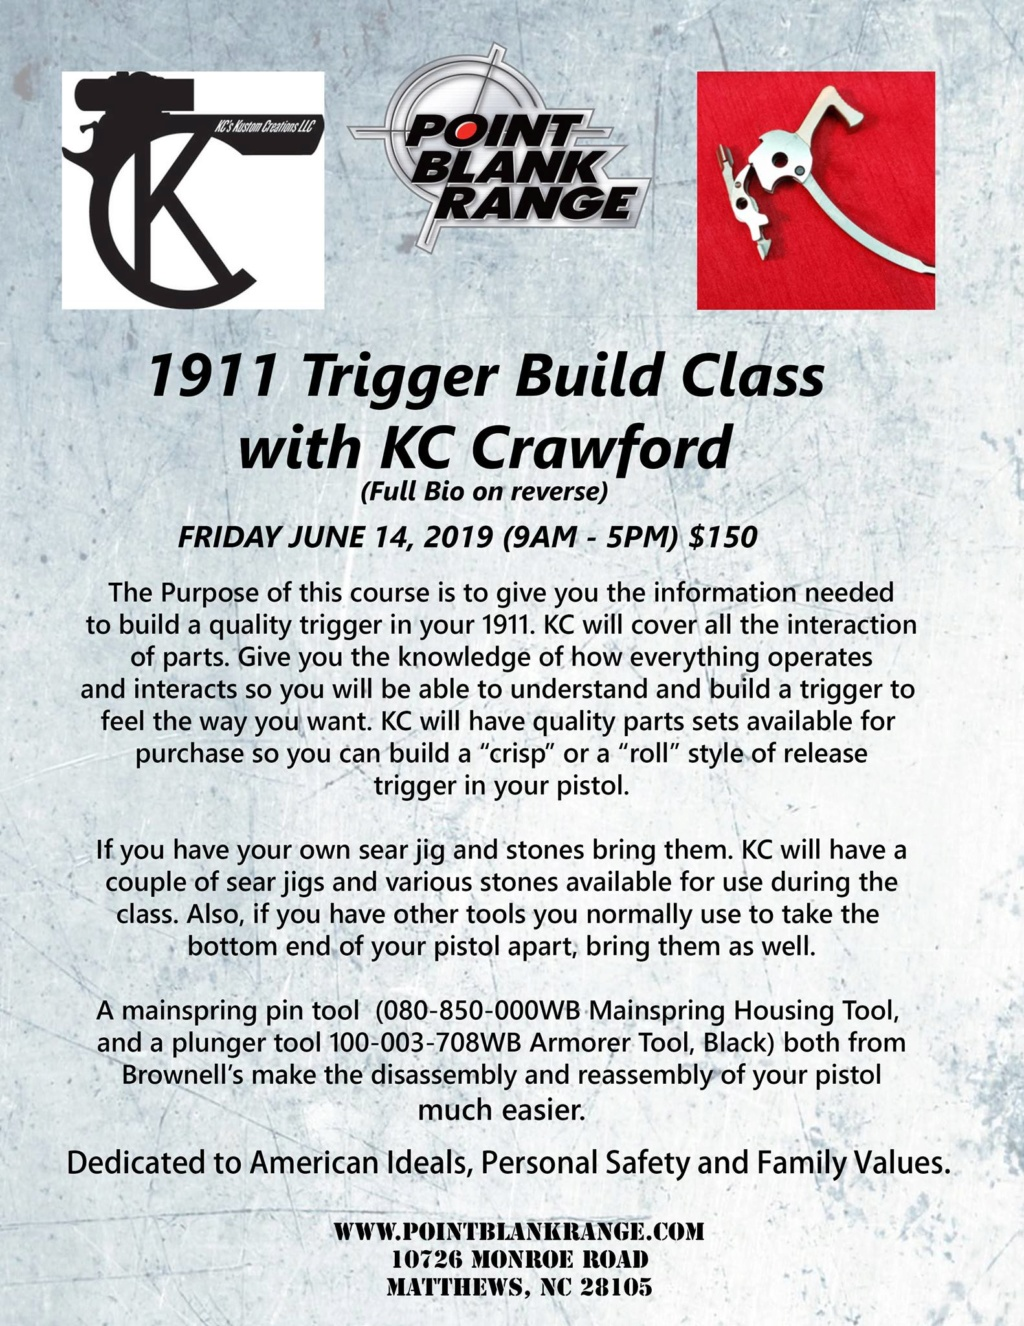 KC Crawford 1911 trigger build class-June 14, 2019 D7b9d910